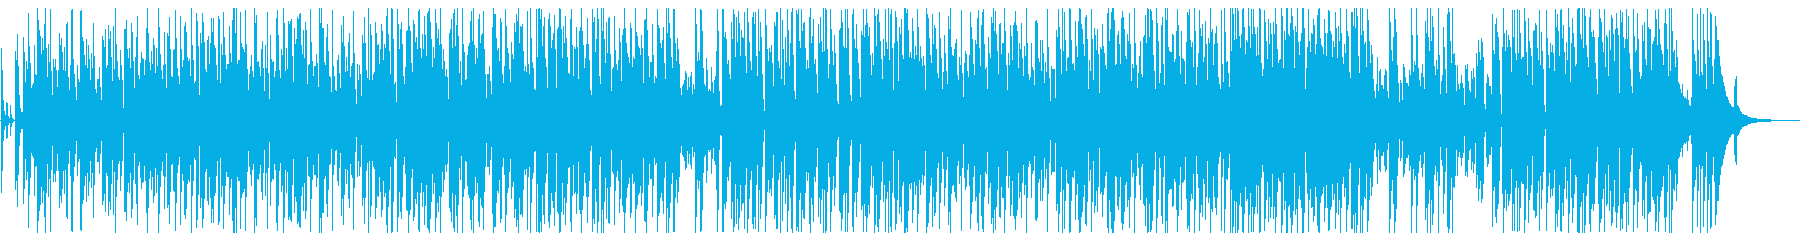 Pops that comically express conflict's reproduced waveform